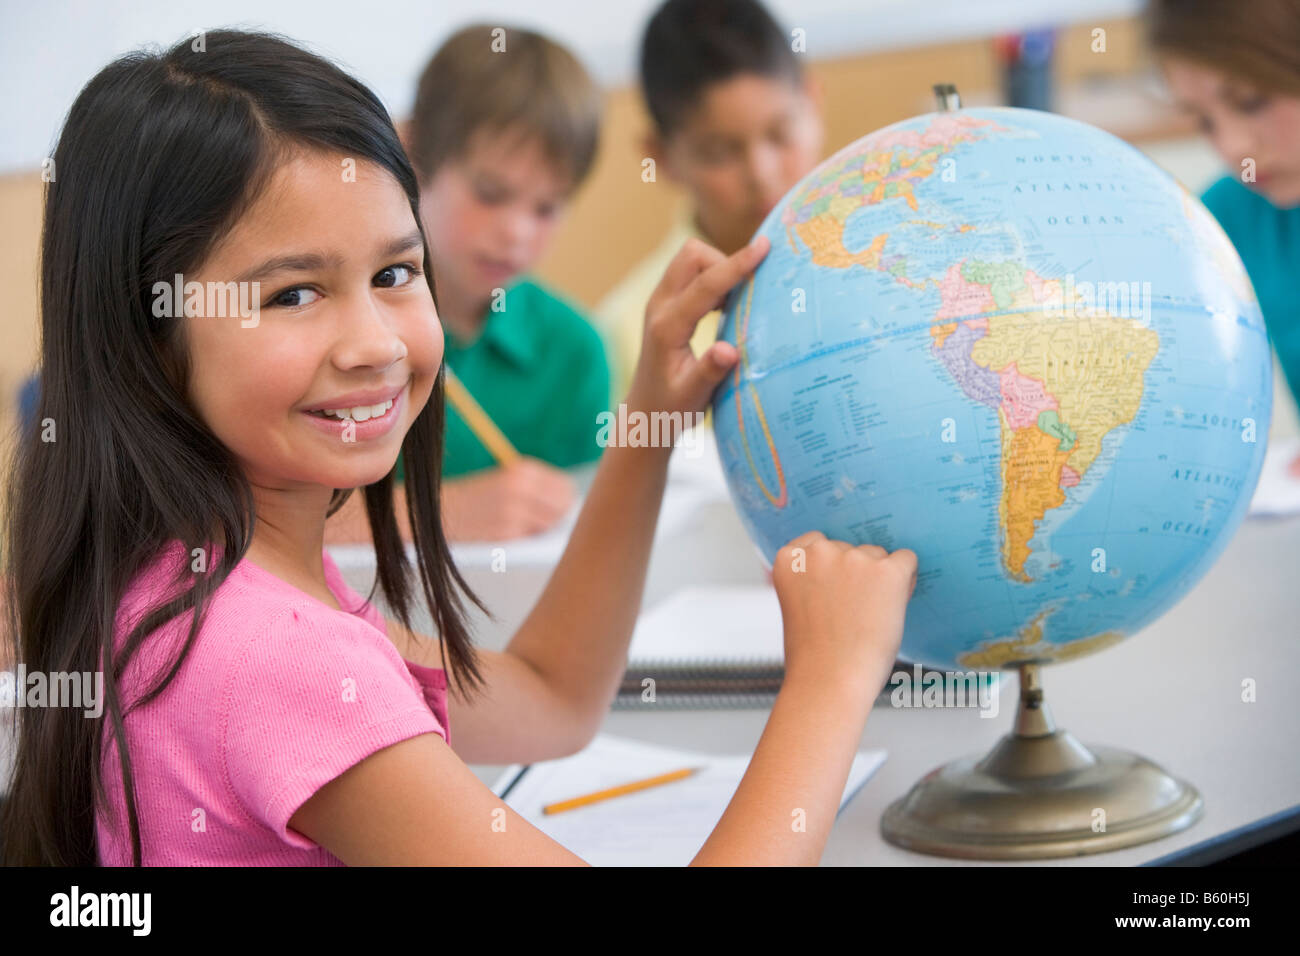 Student in class pointing at a globe (selective focus) - Stock Image